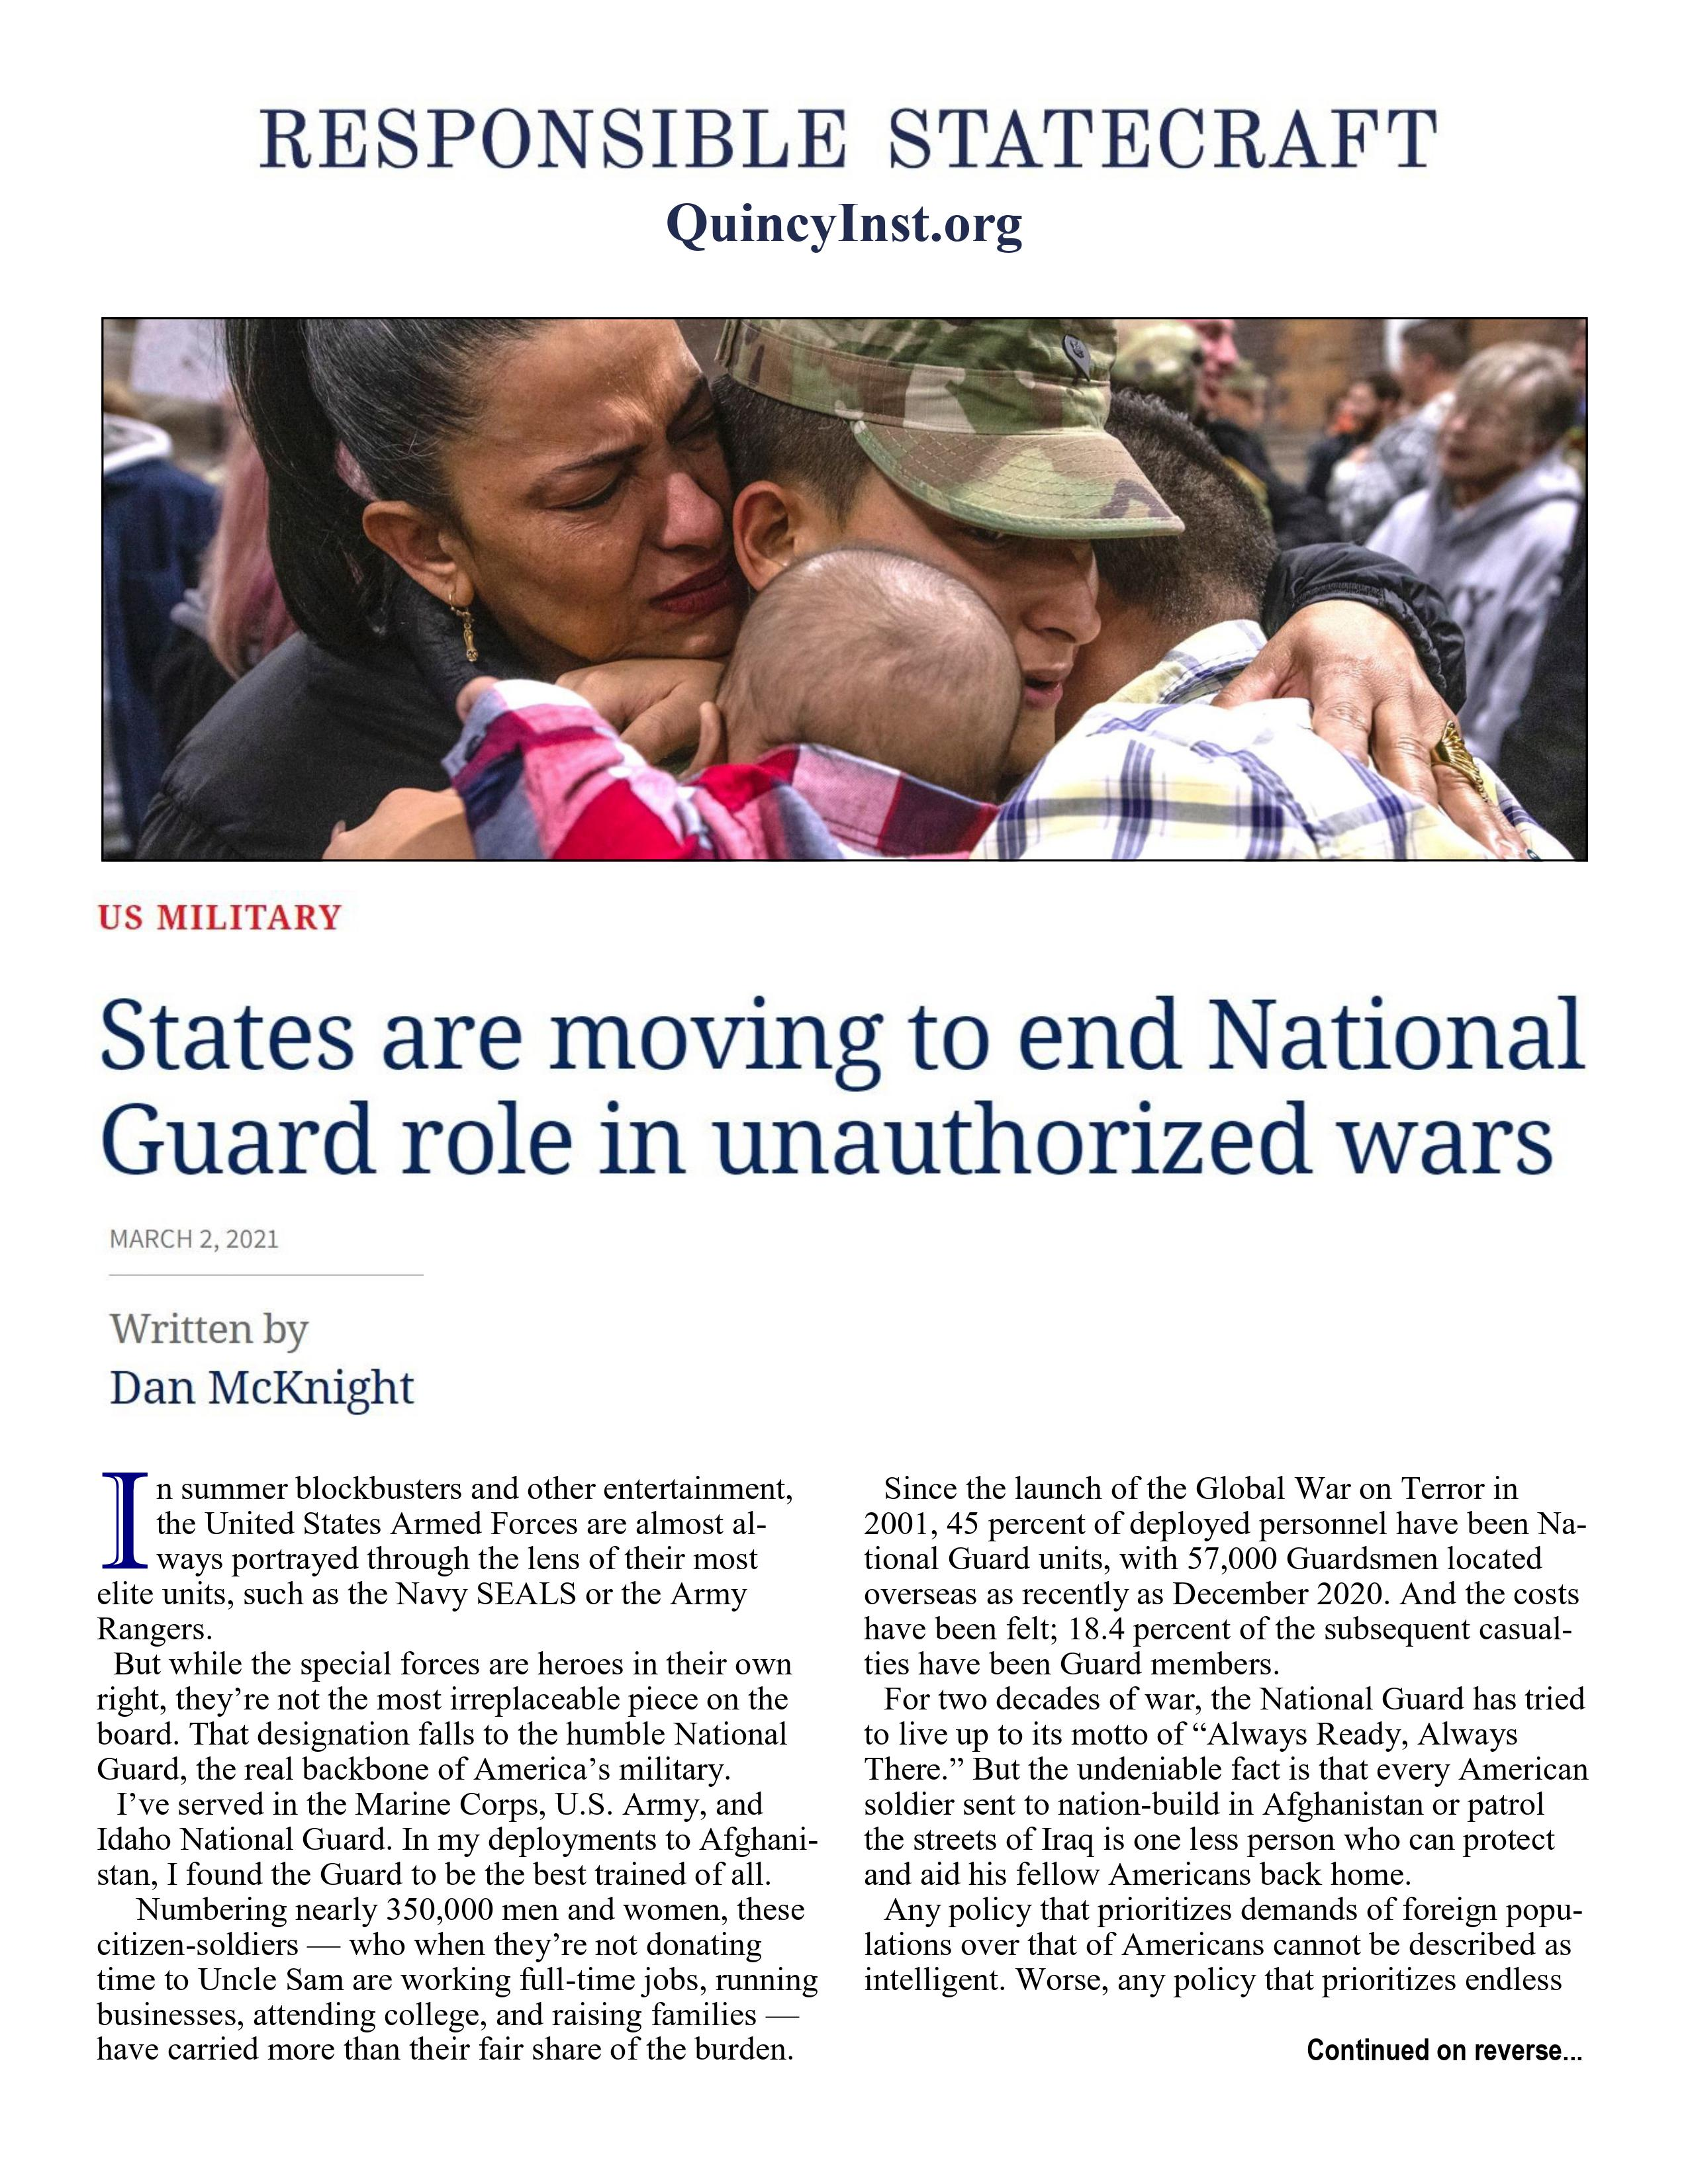 States Are Moving to End National Guard Role in Unauthorized Wars